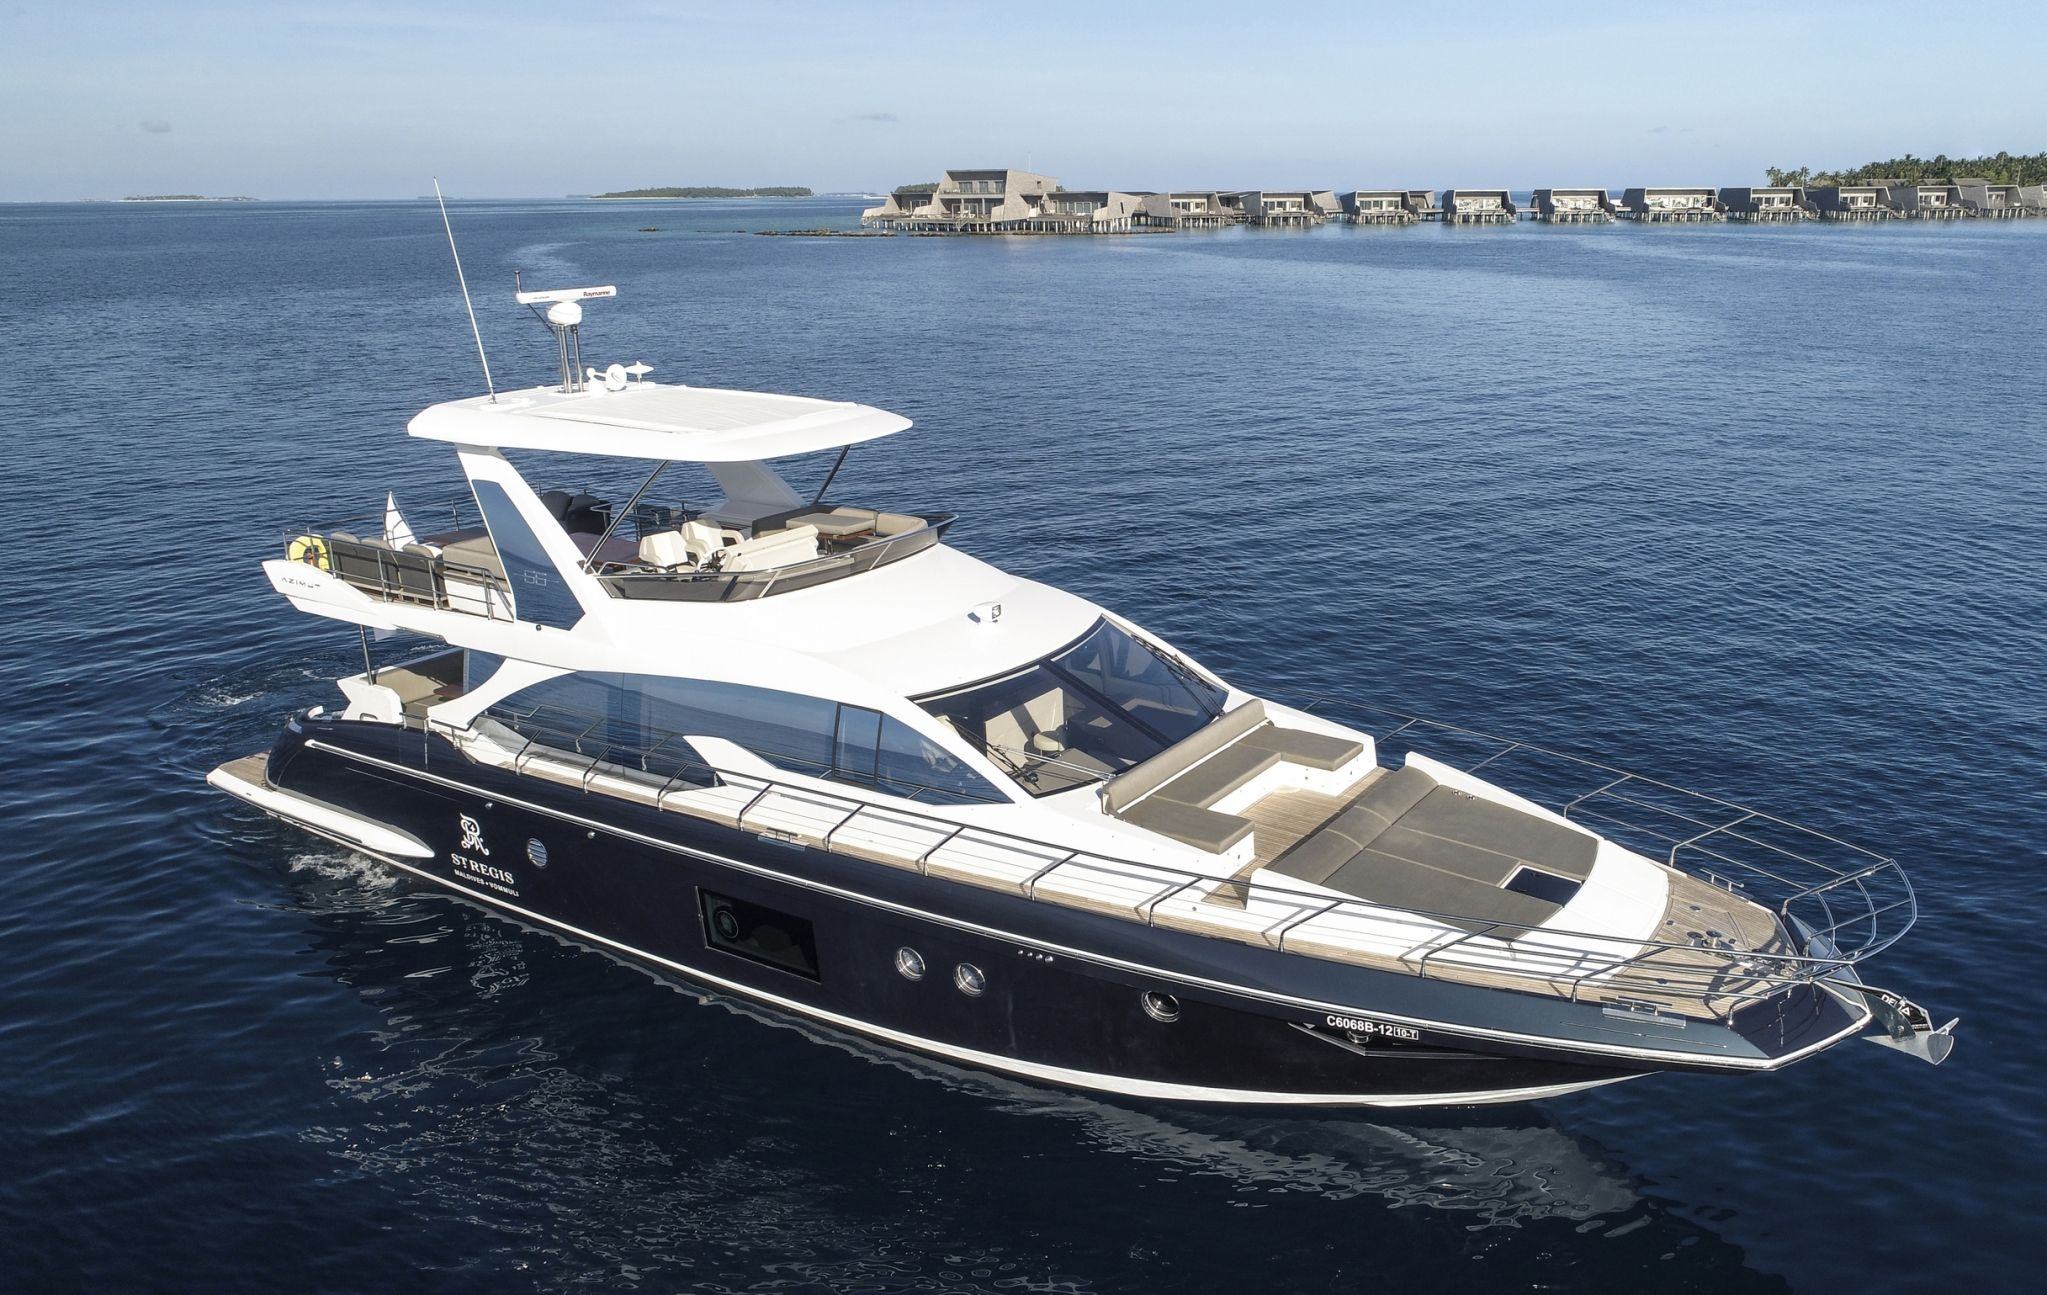 Norma, The St. Regis Maldives' Azimut flybridge 66 yacht